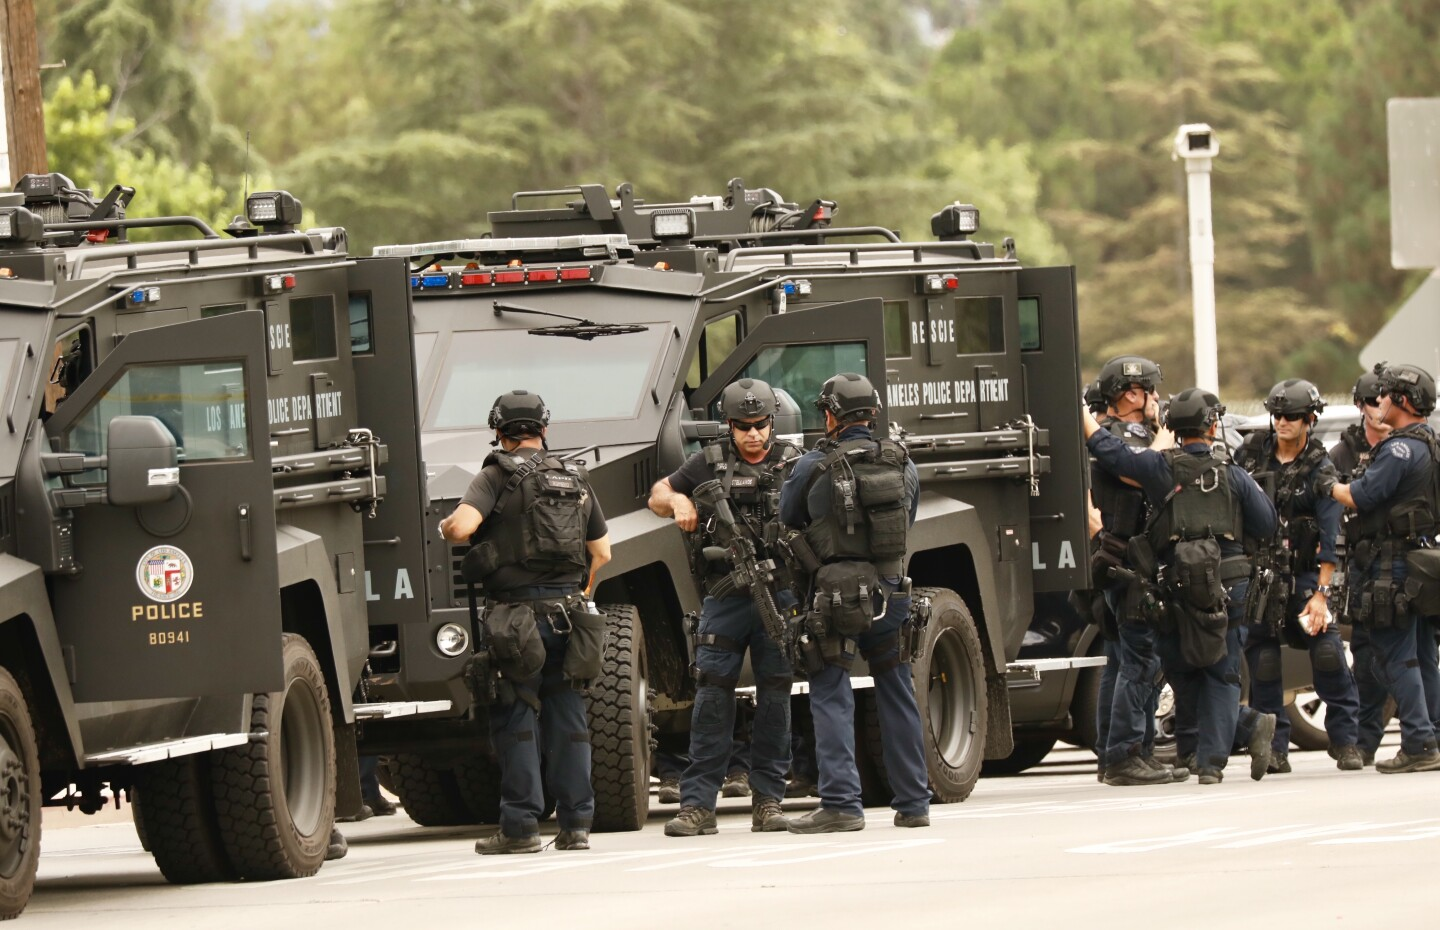 LAPD SWAT swarms area near a Orange line bus at Victory and Woodley where victim was shot by possible gunman being sought by LAPD for killing his family early today in Canoga Park.